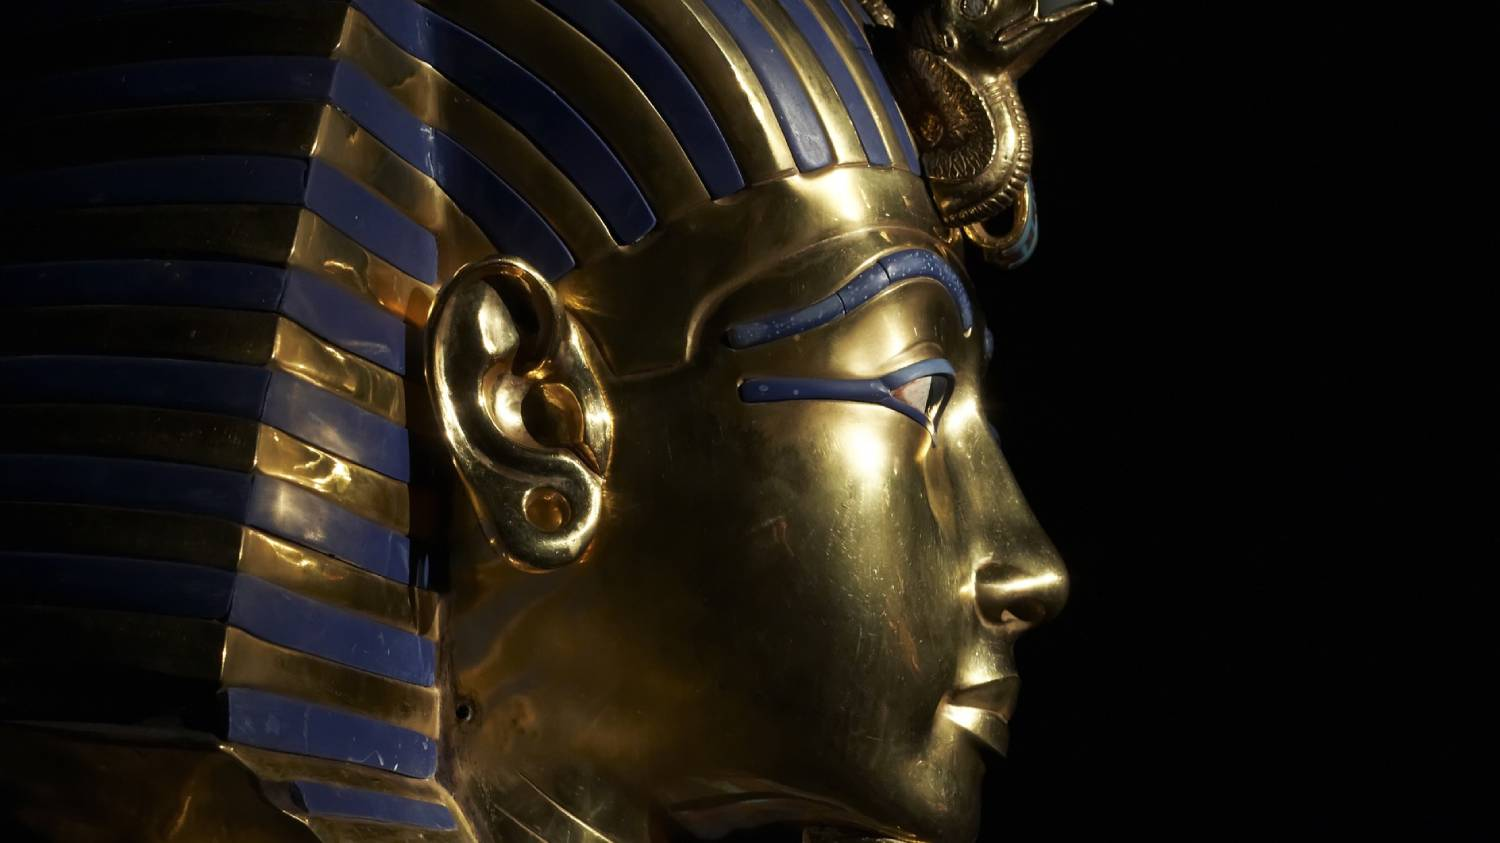 Egyptian Museum - Things To Do In Cairo